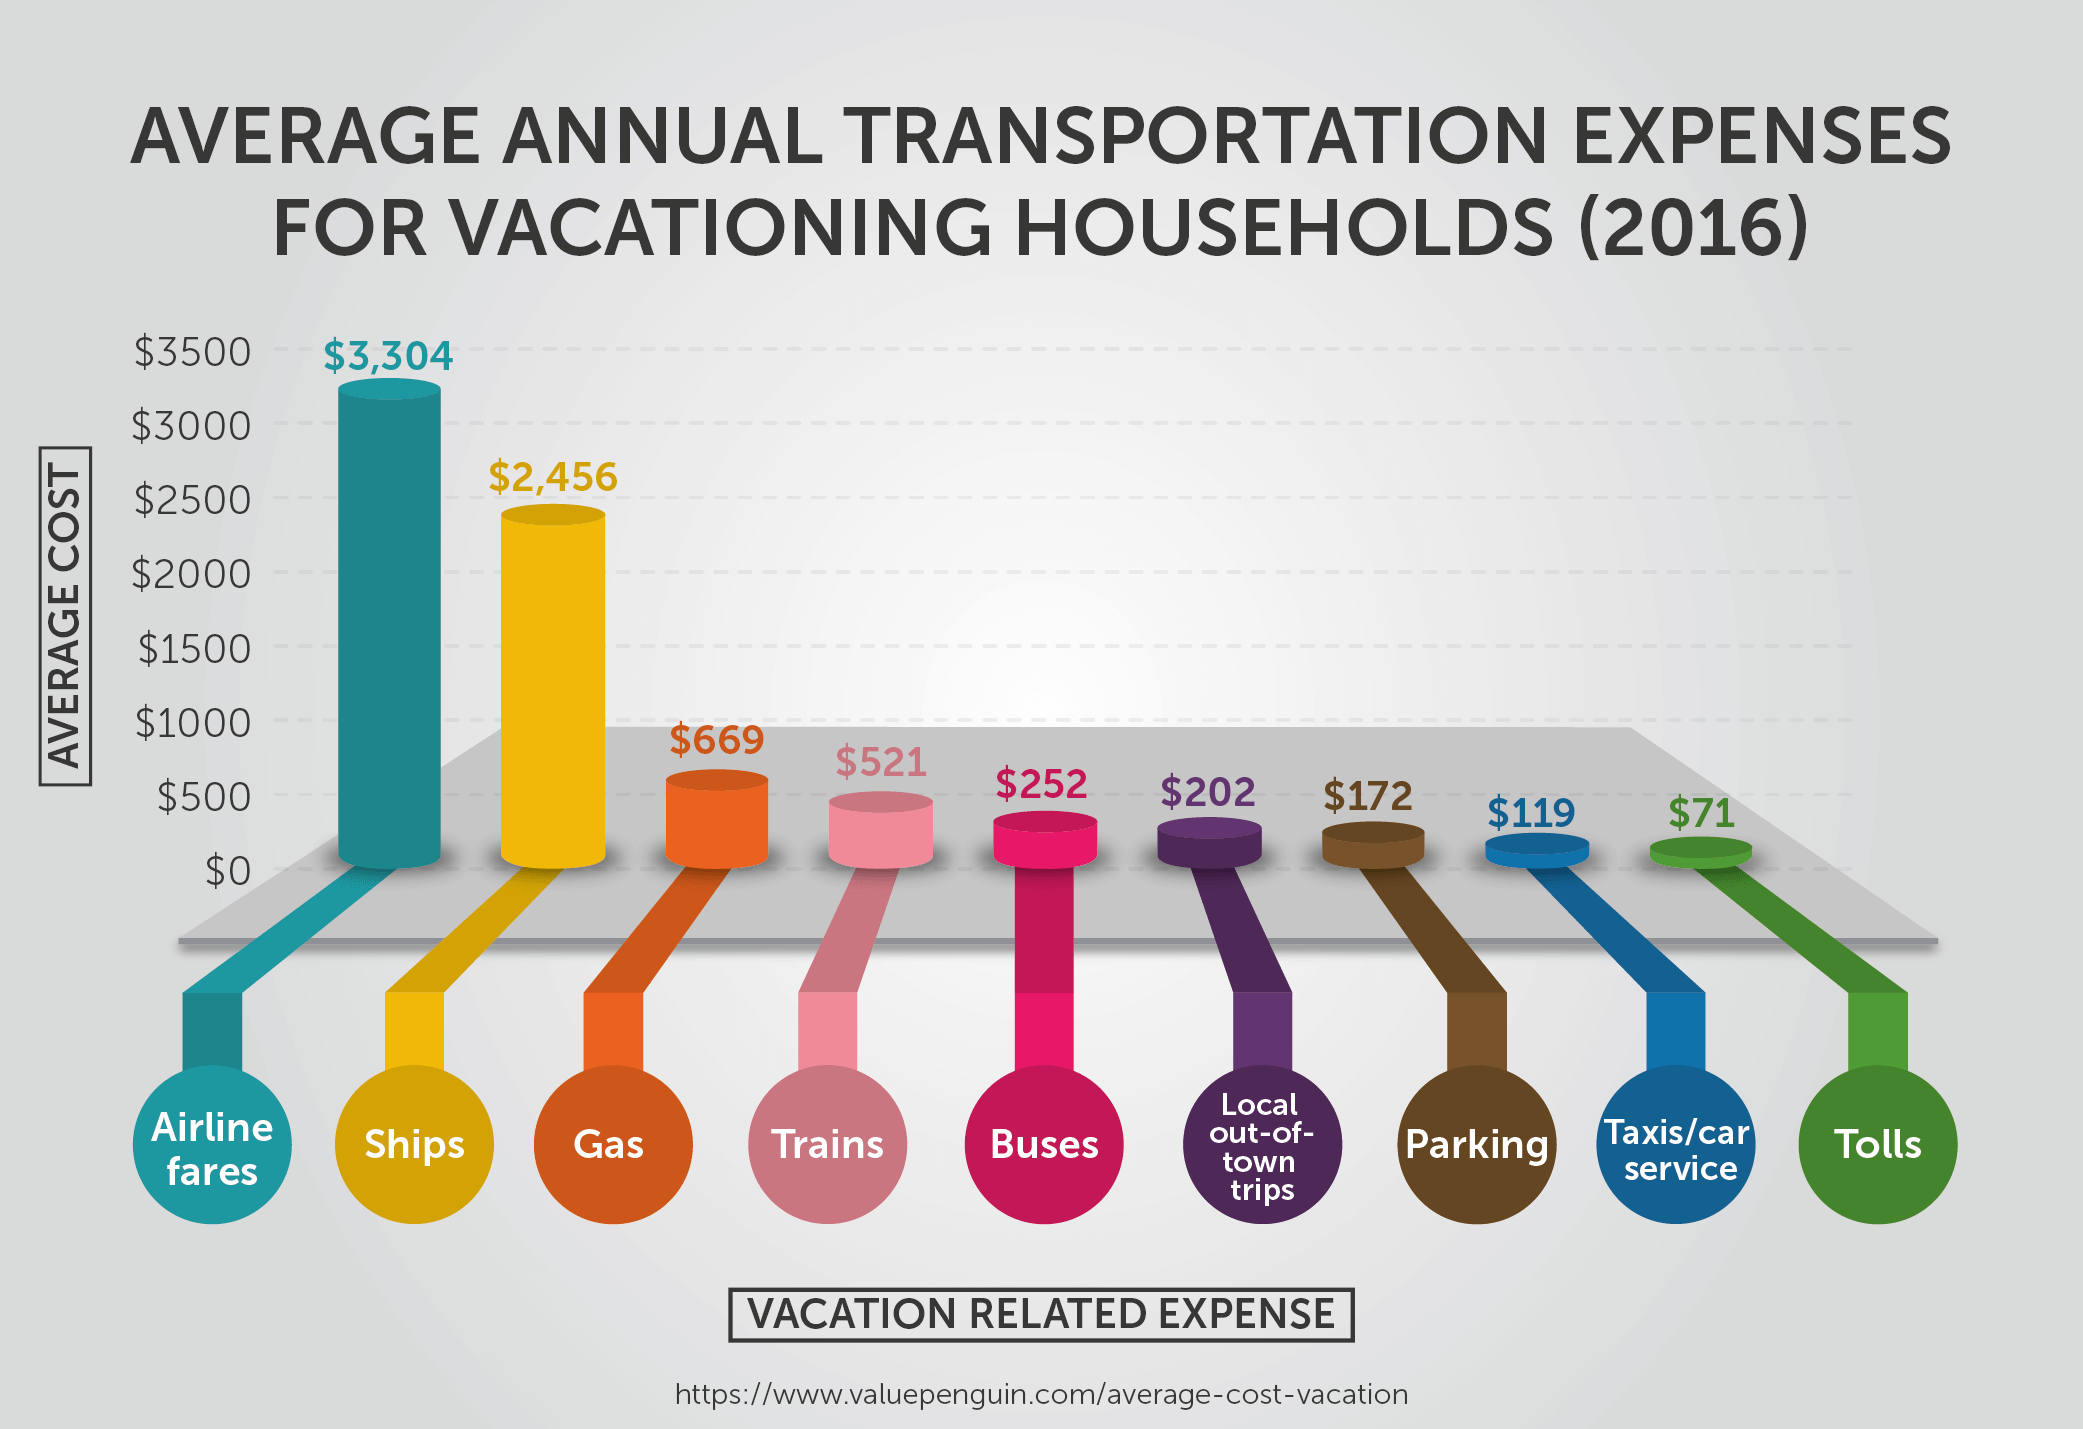 Average Annual Transportation Expenses for Vacationing Households (2016)